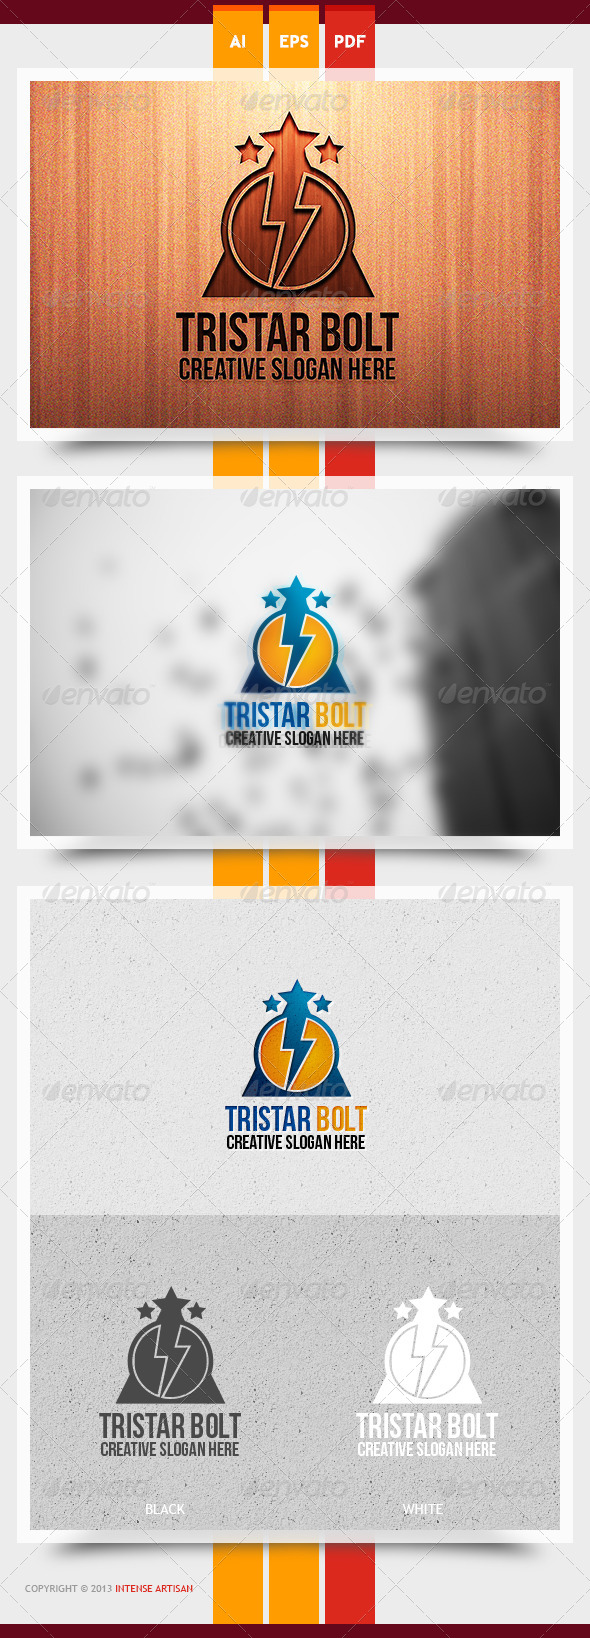 Tristar Bolt Logo Template - Objects Logo Templates